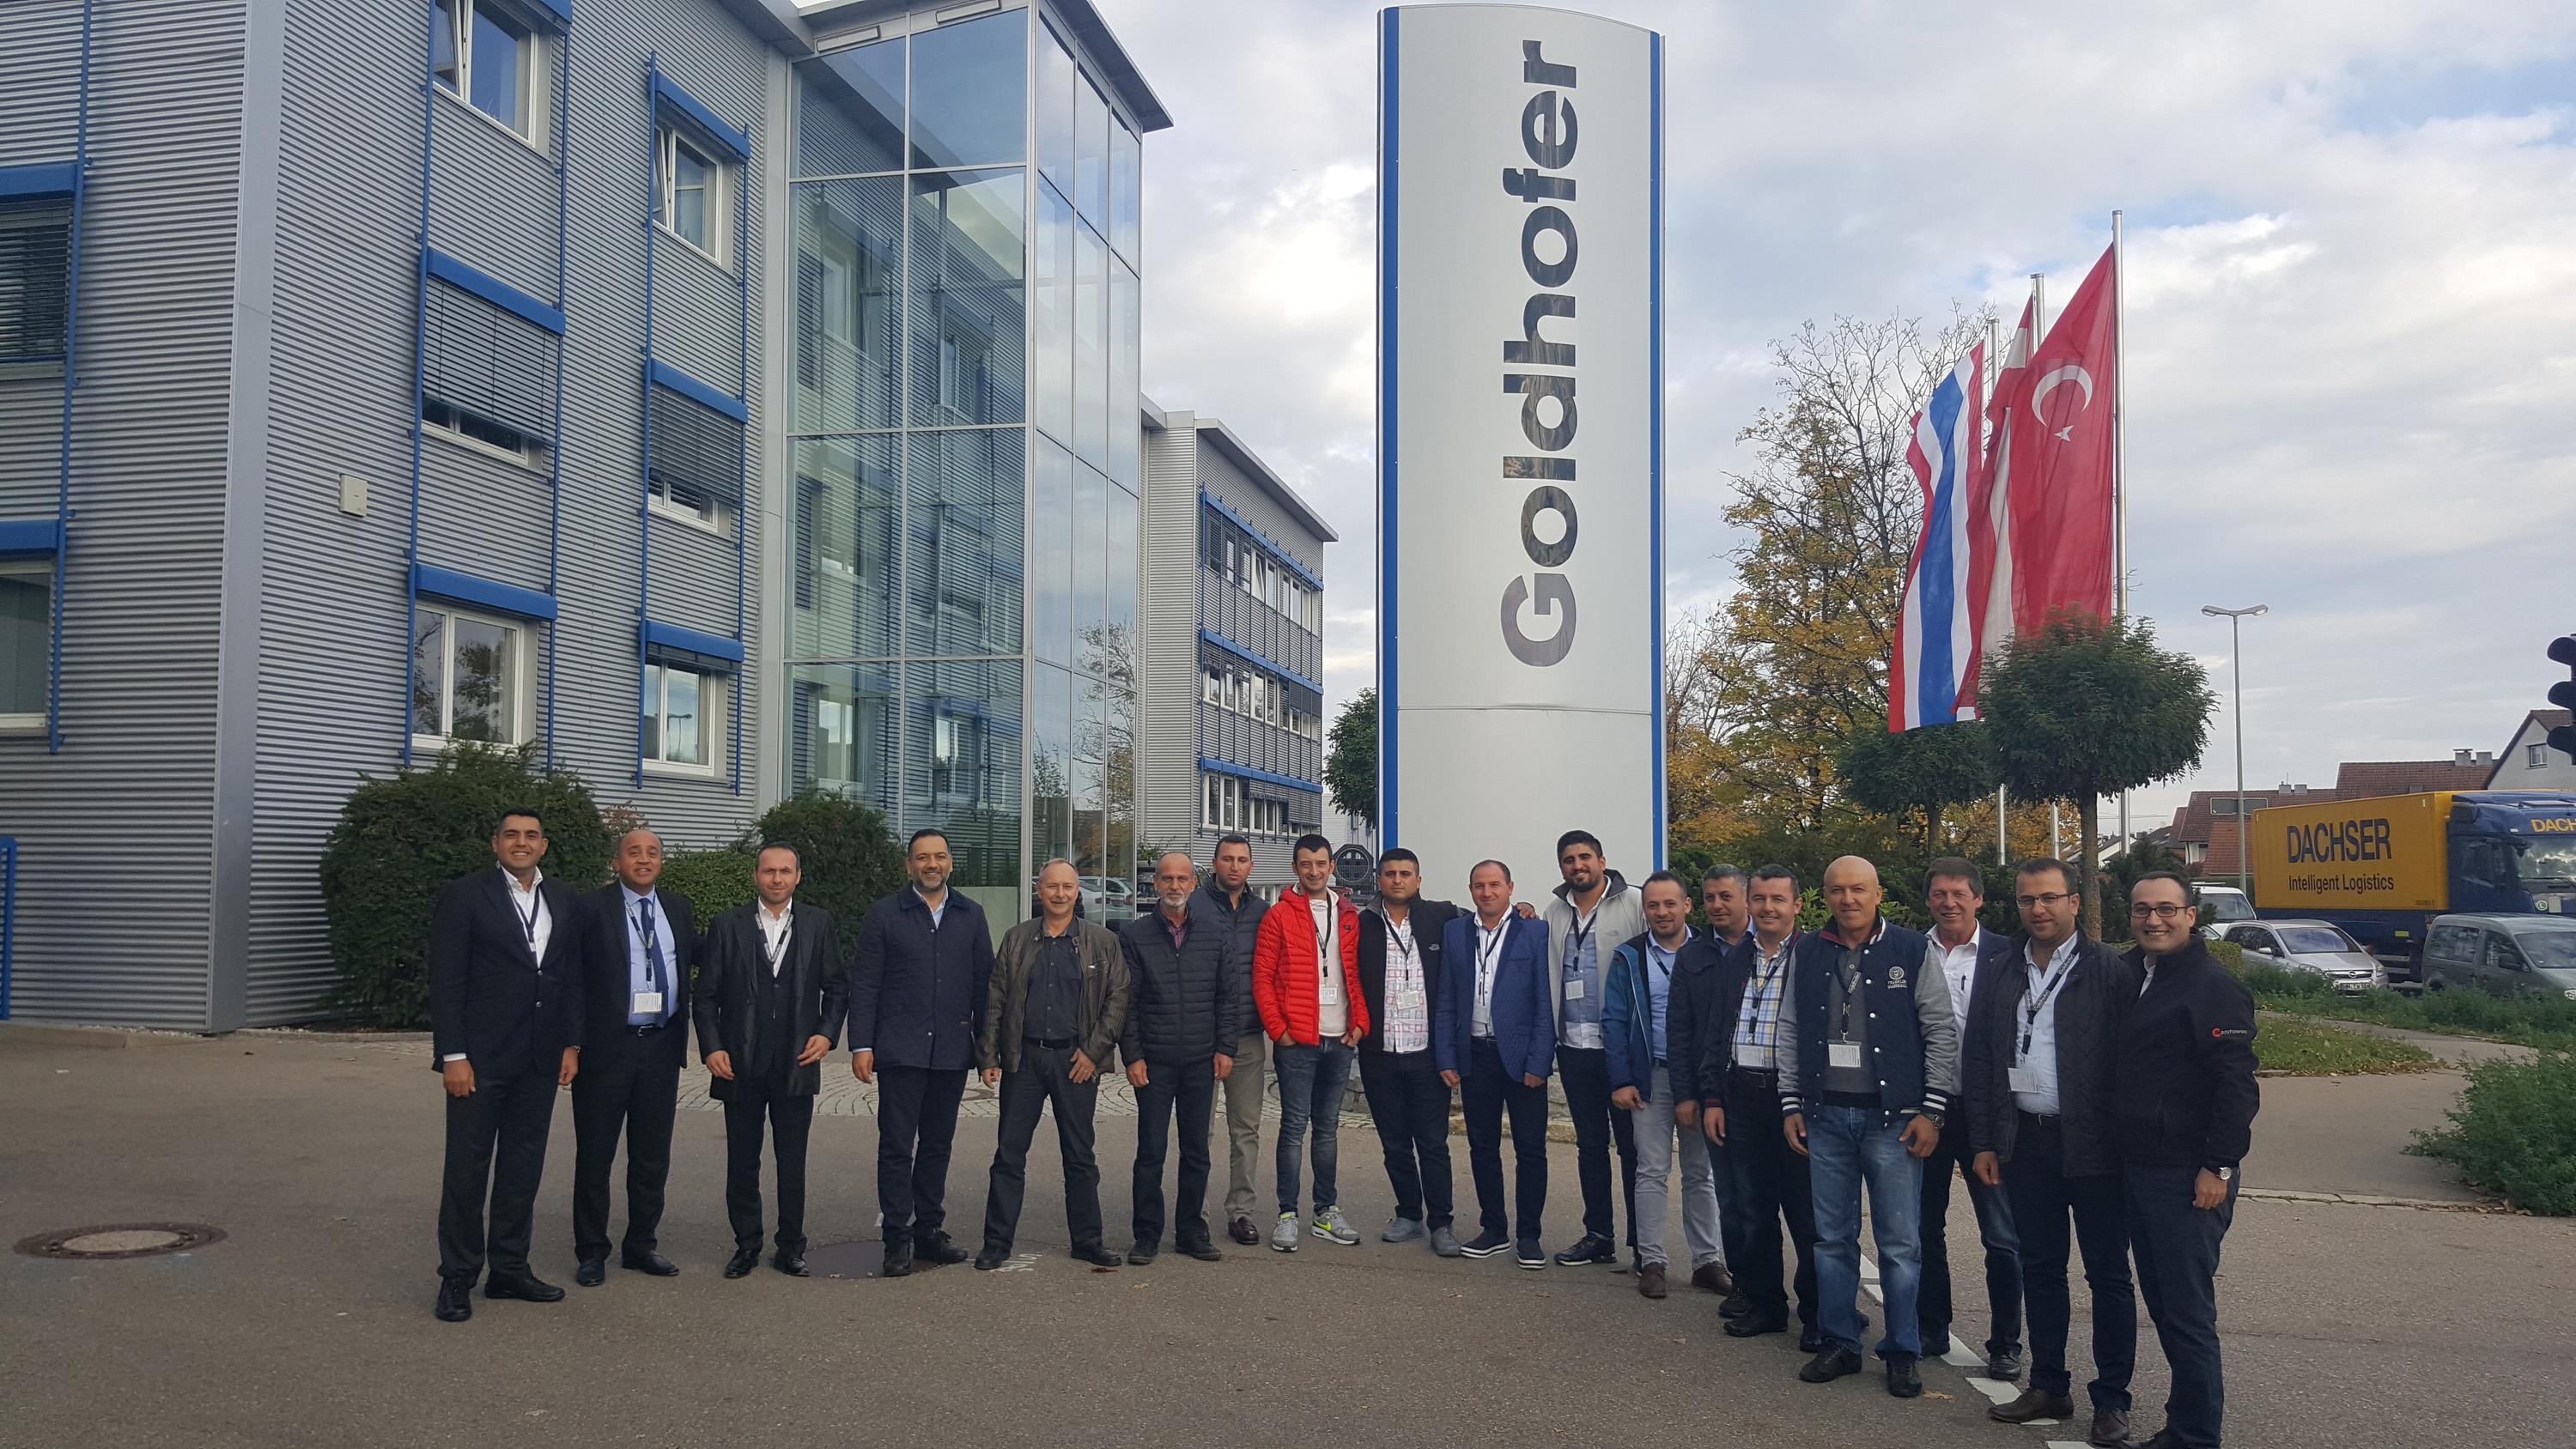 AND delegates visited Goldhofer's headquarters in Germany to see the latest trailer technologies.